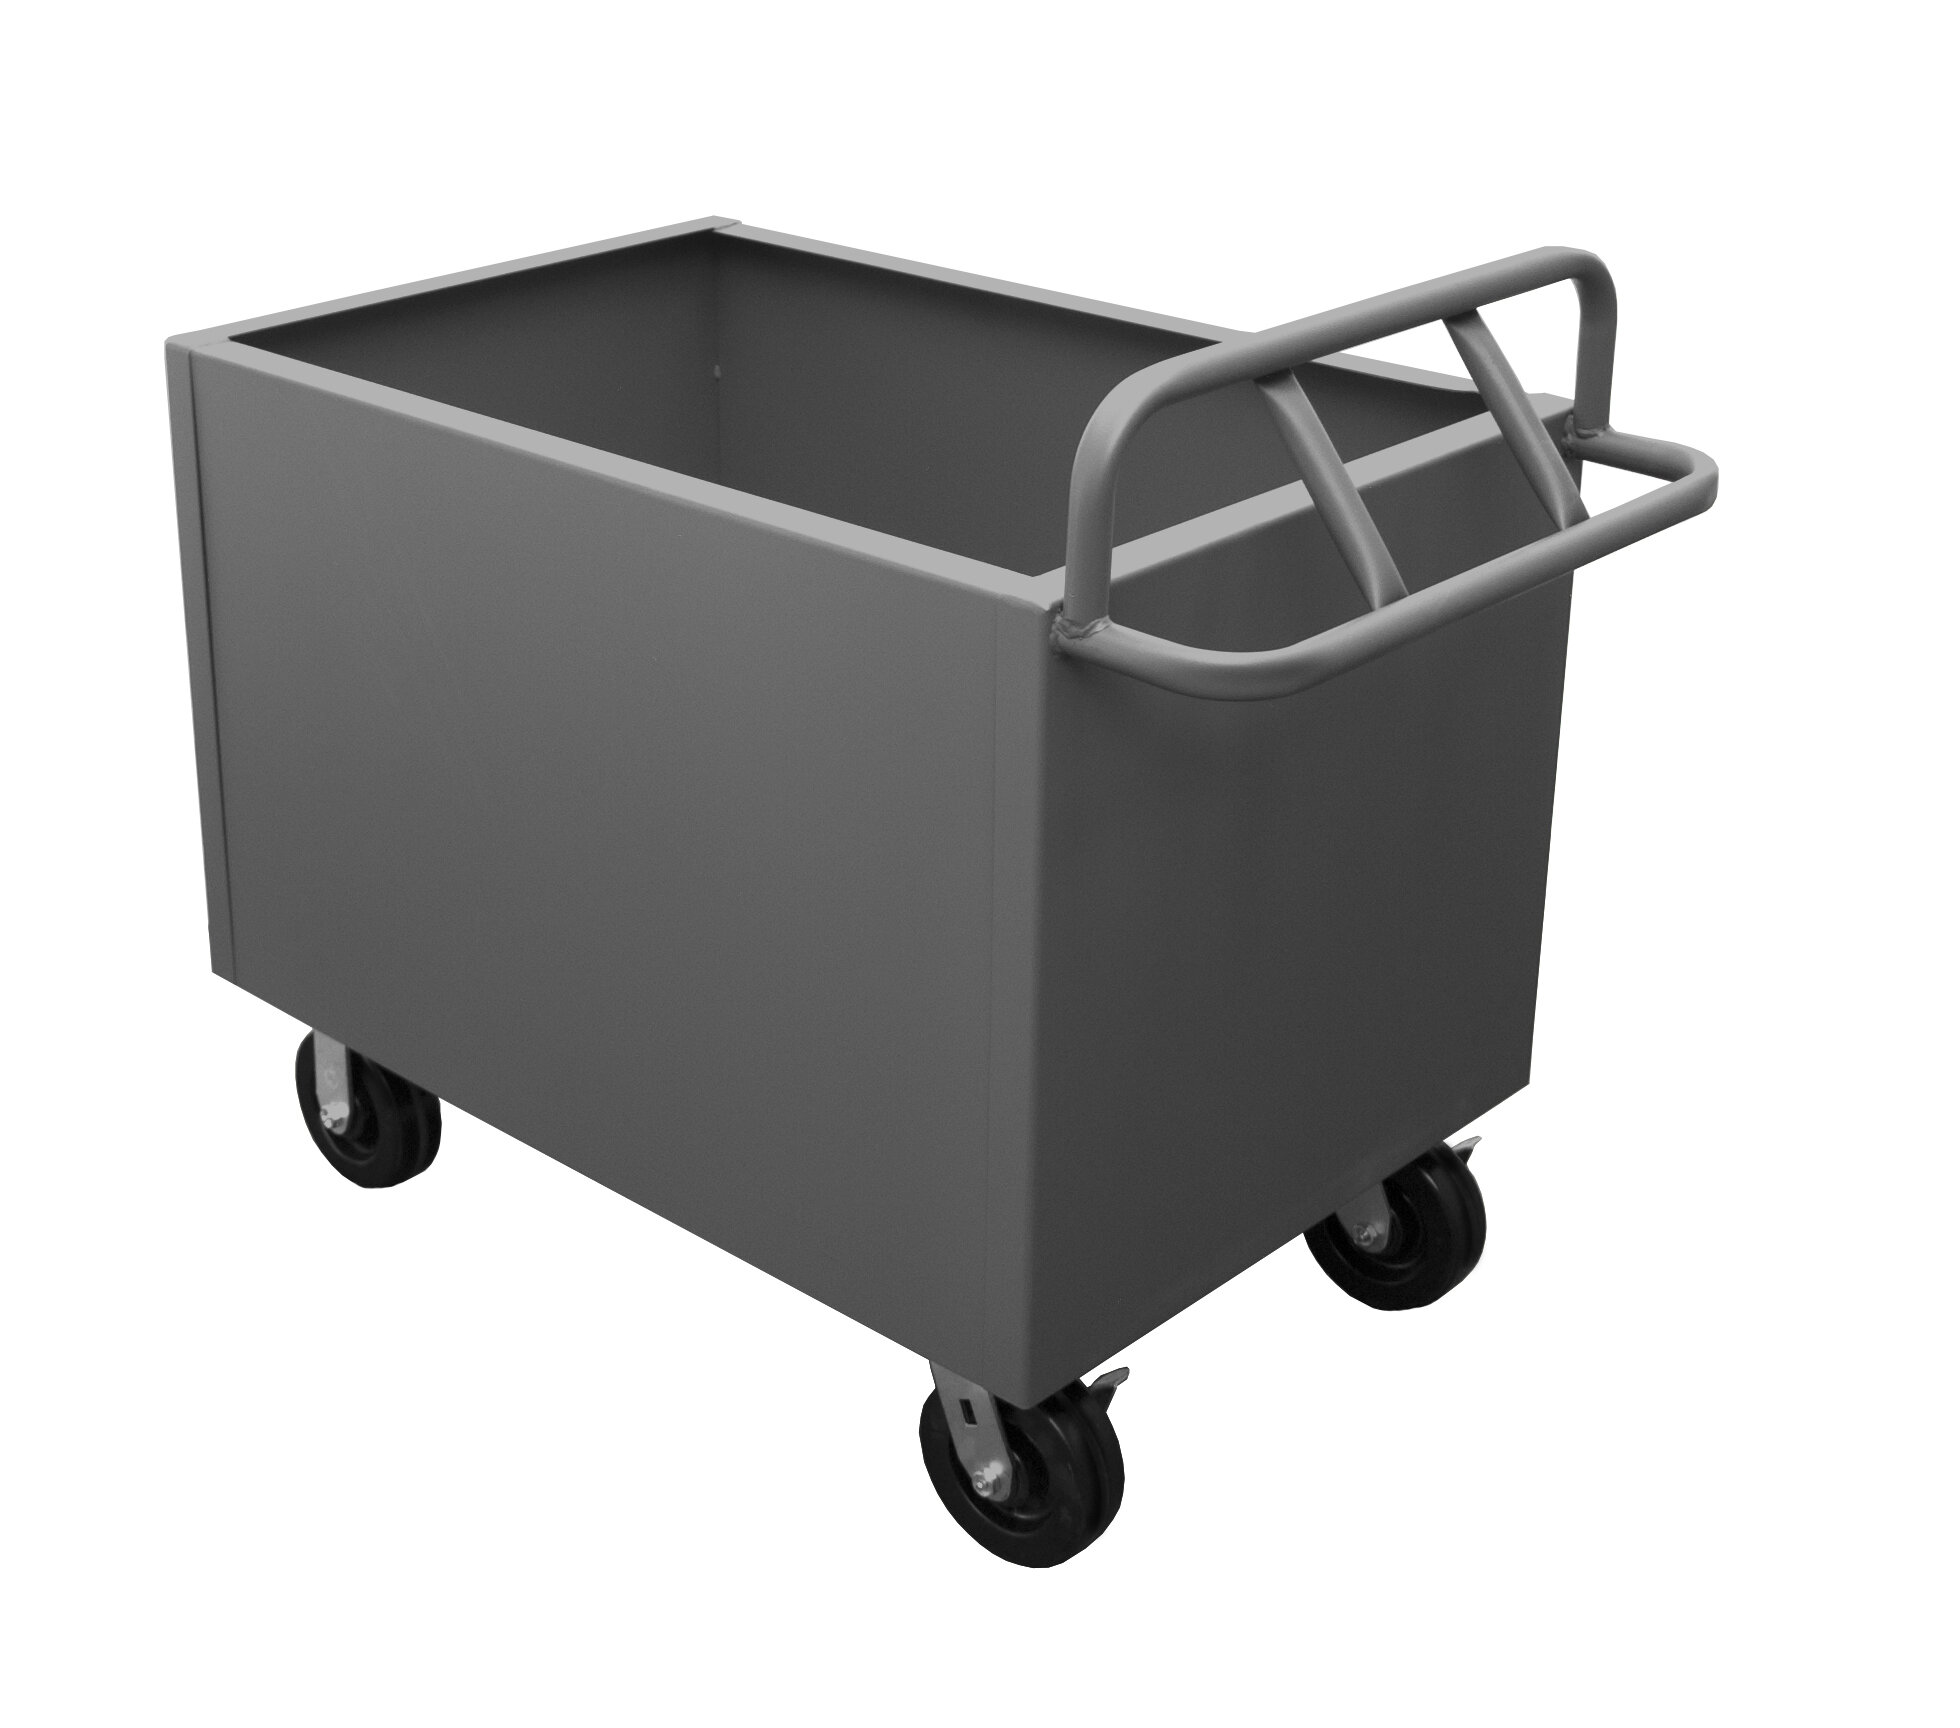 Factory Utility Cart: Durham Manufacturing Box Utility Cart